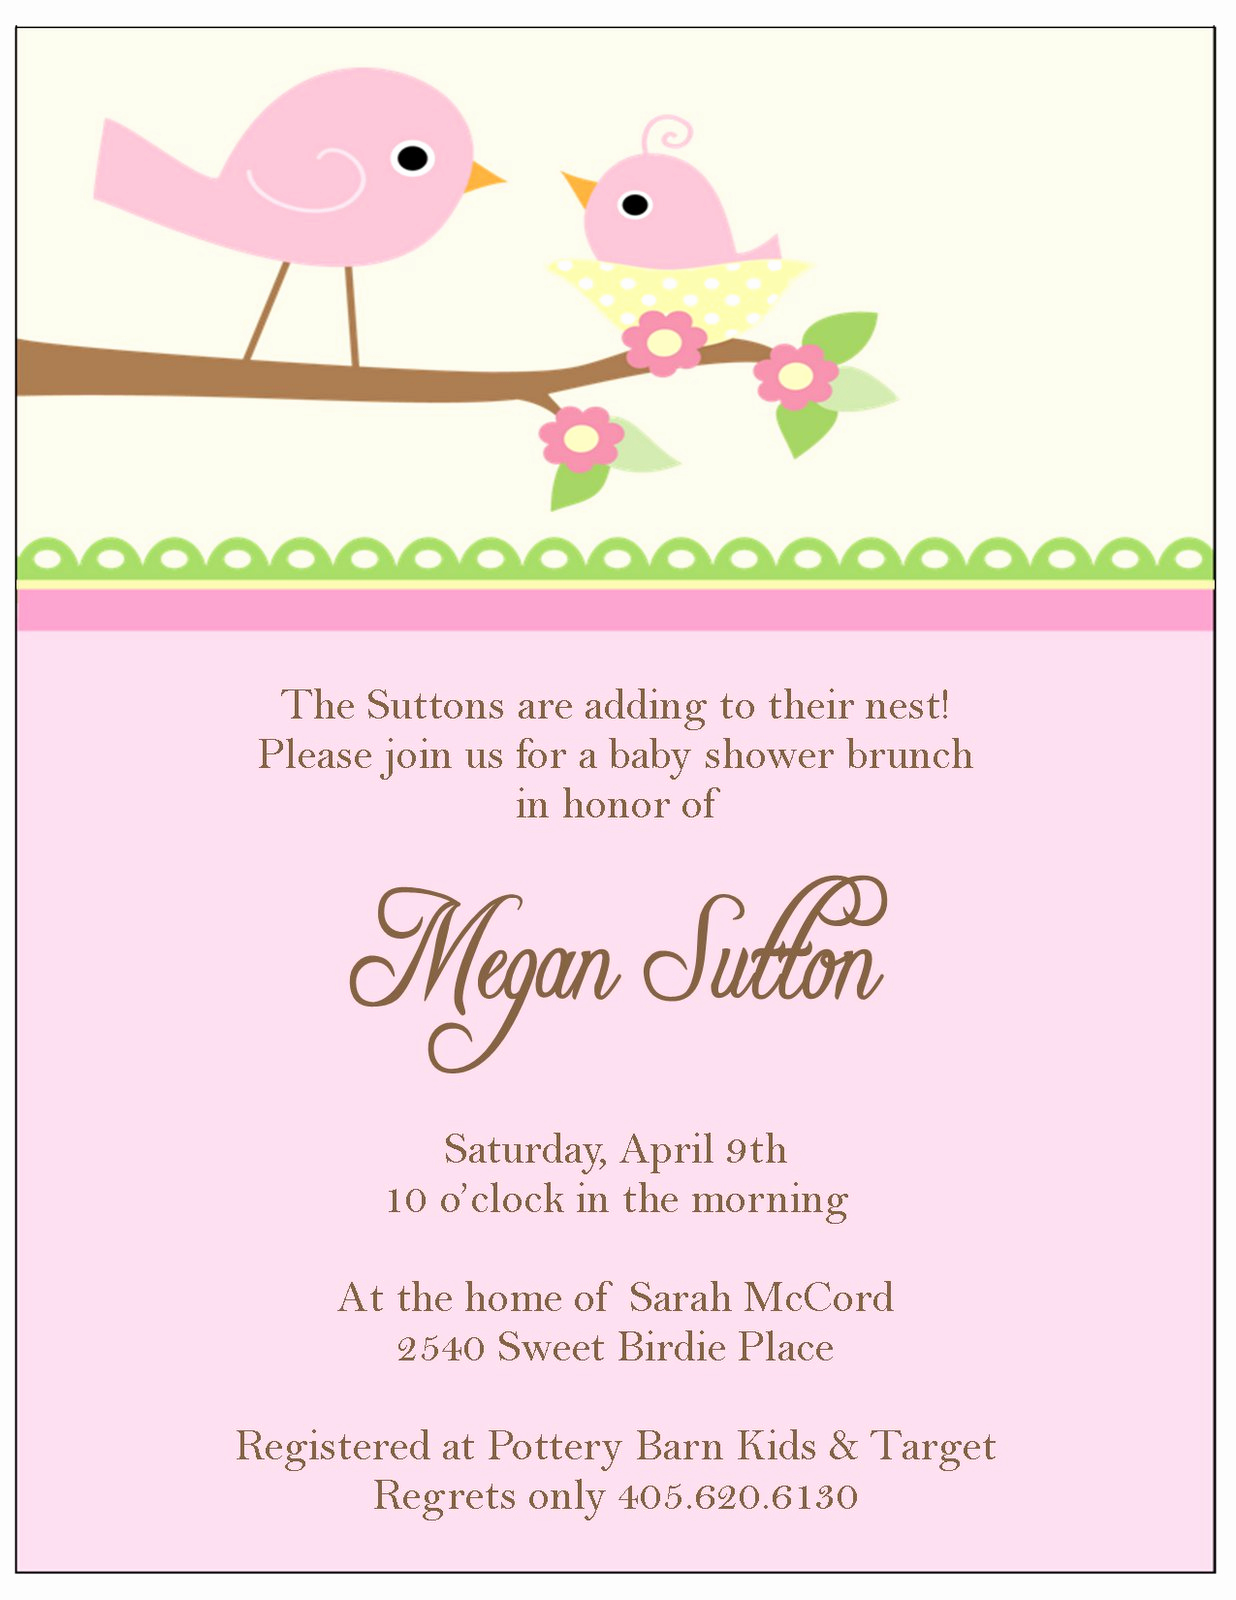 Baby Shower Invitation for Girl New Birthday Invitation Mickey Mouse Birthday Invitations